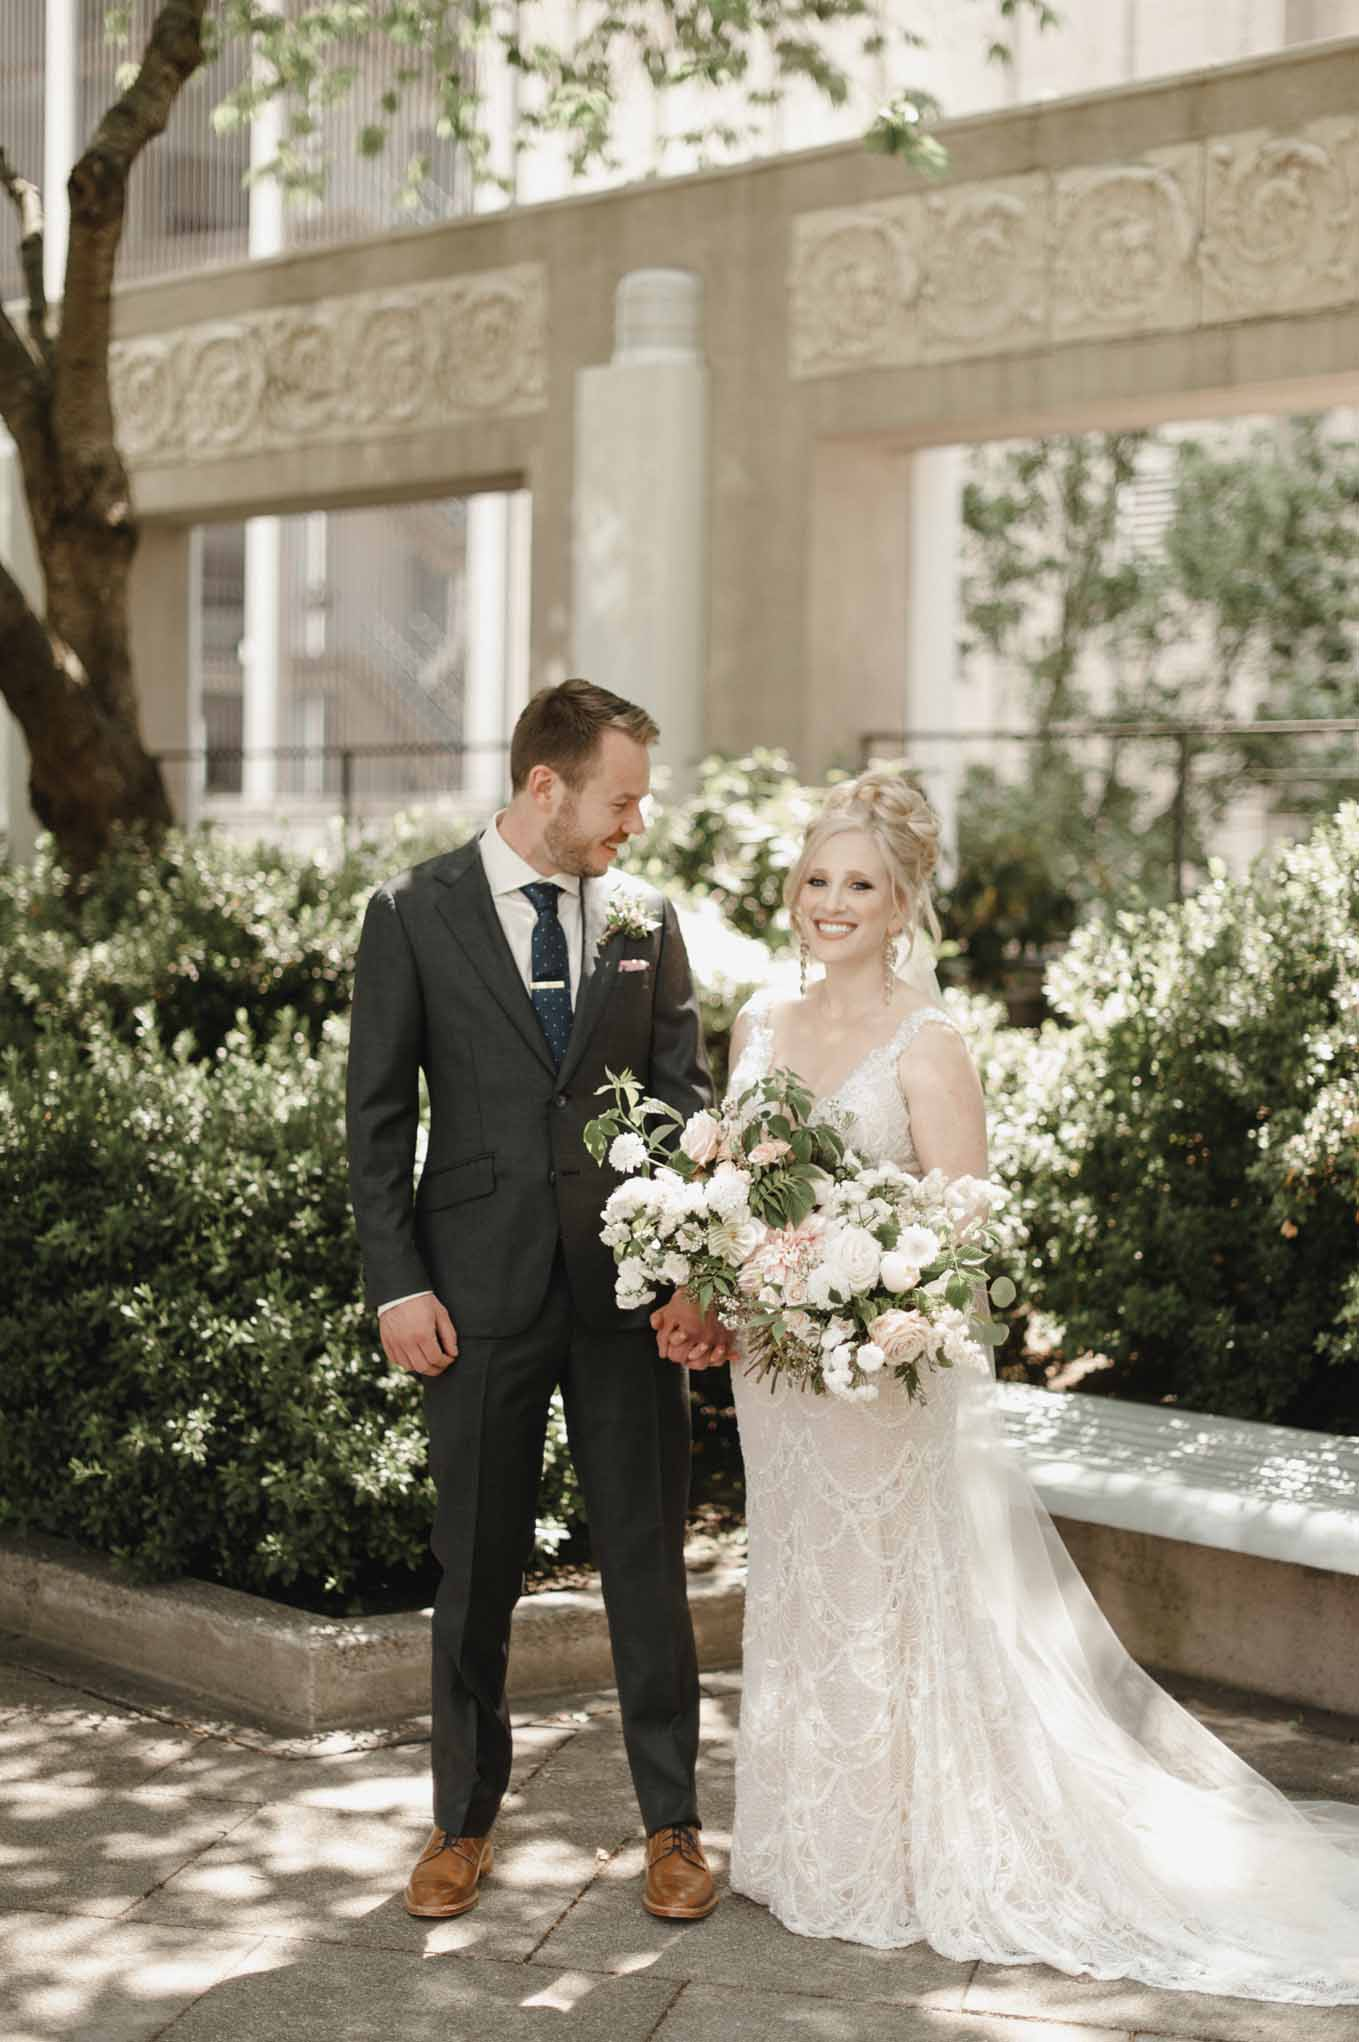 Bride and groom with large bouquet, designed by Flora Nova Design